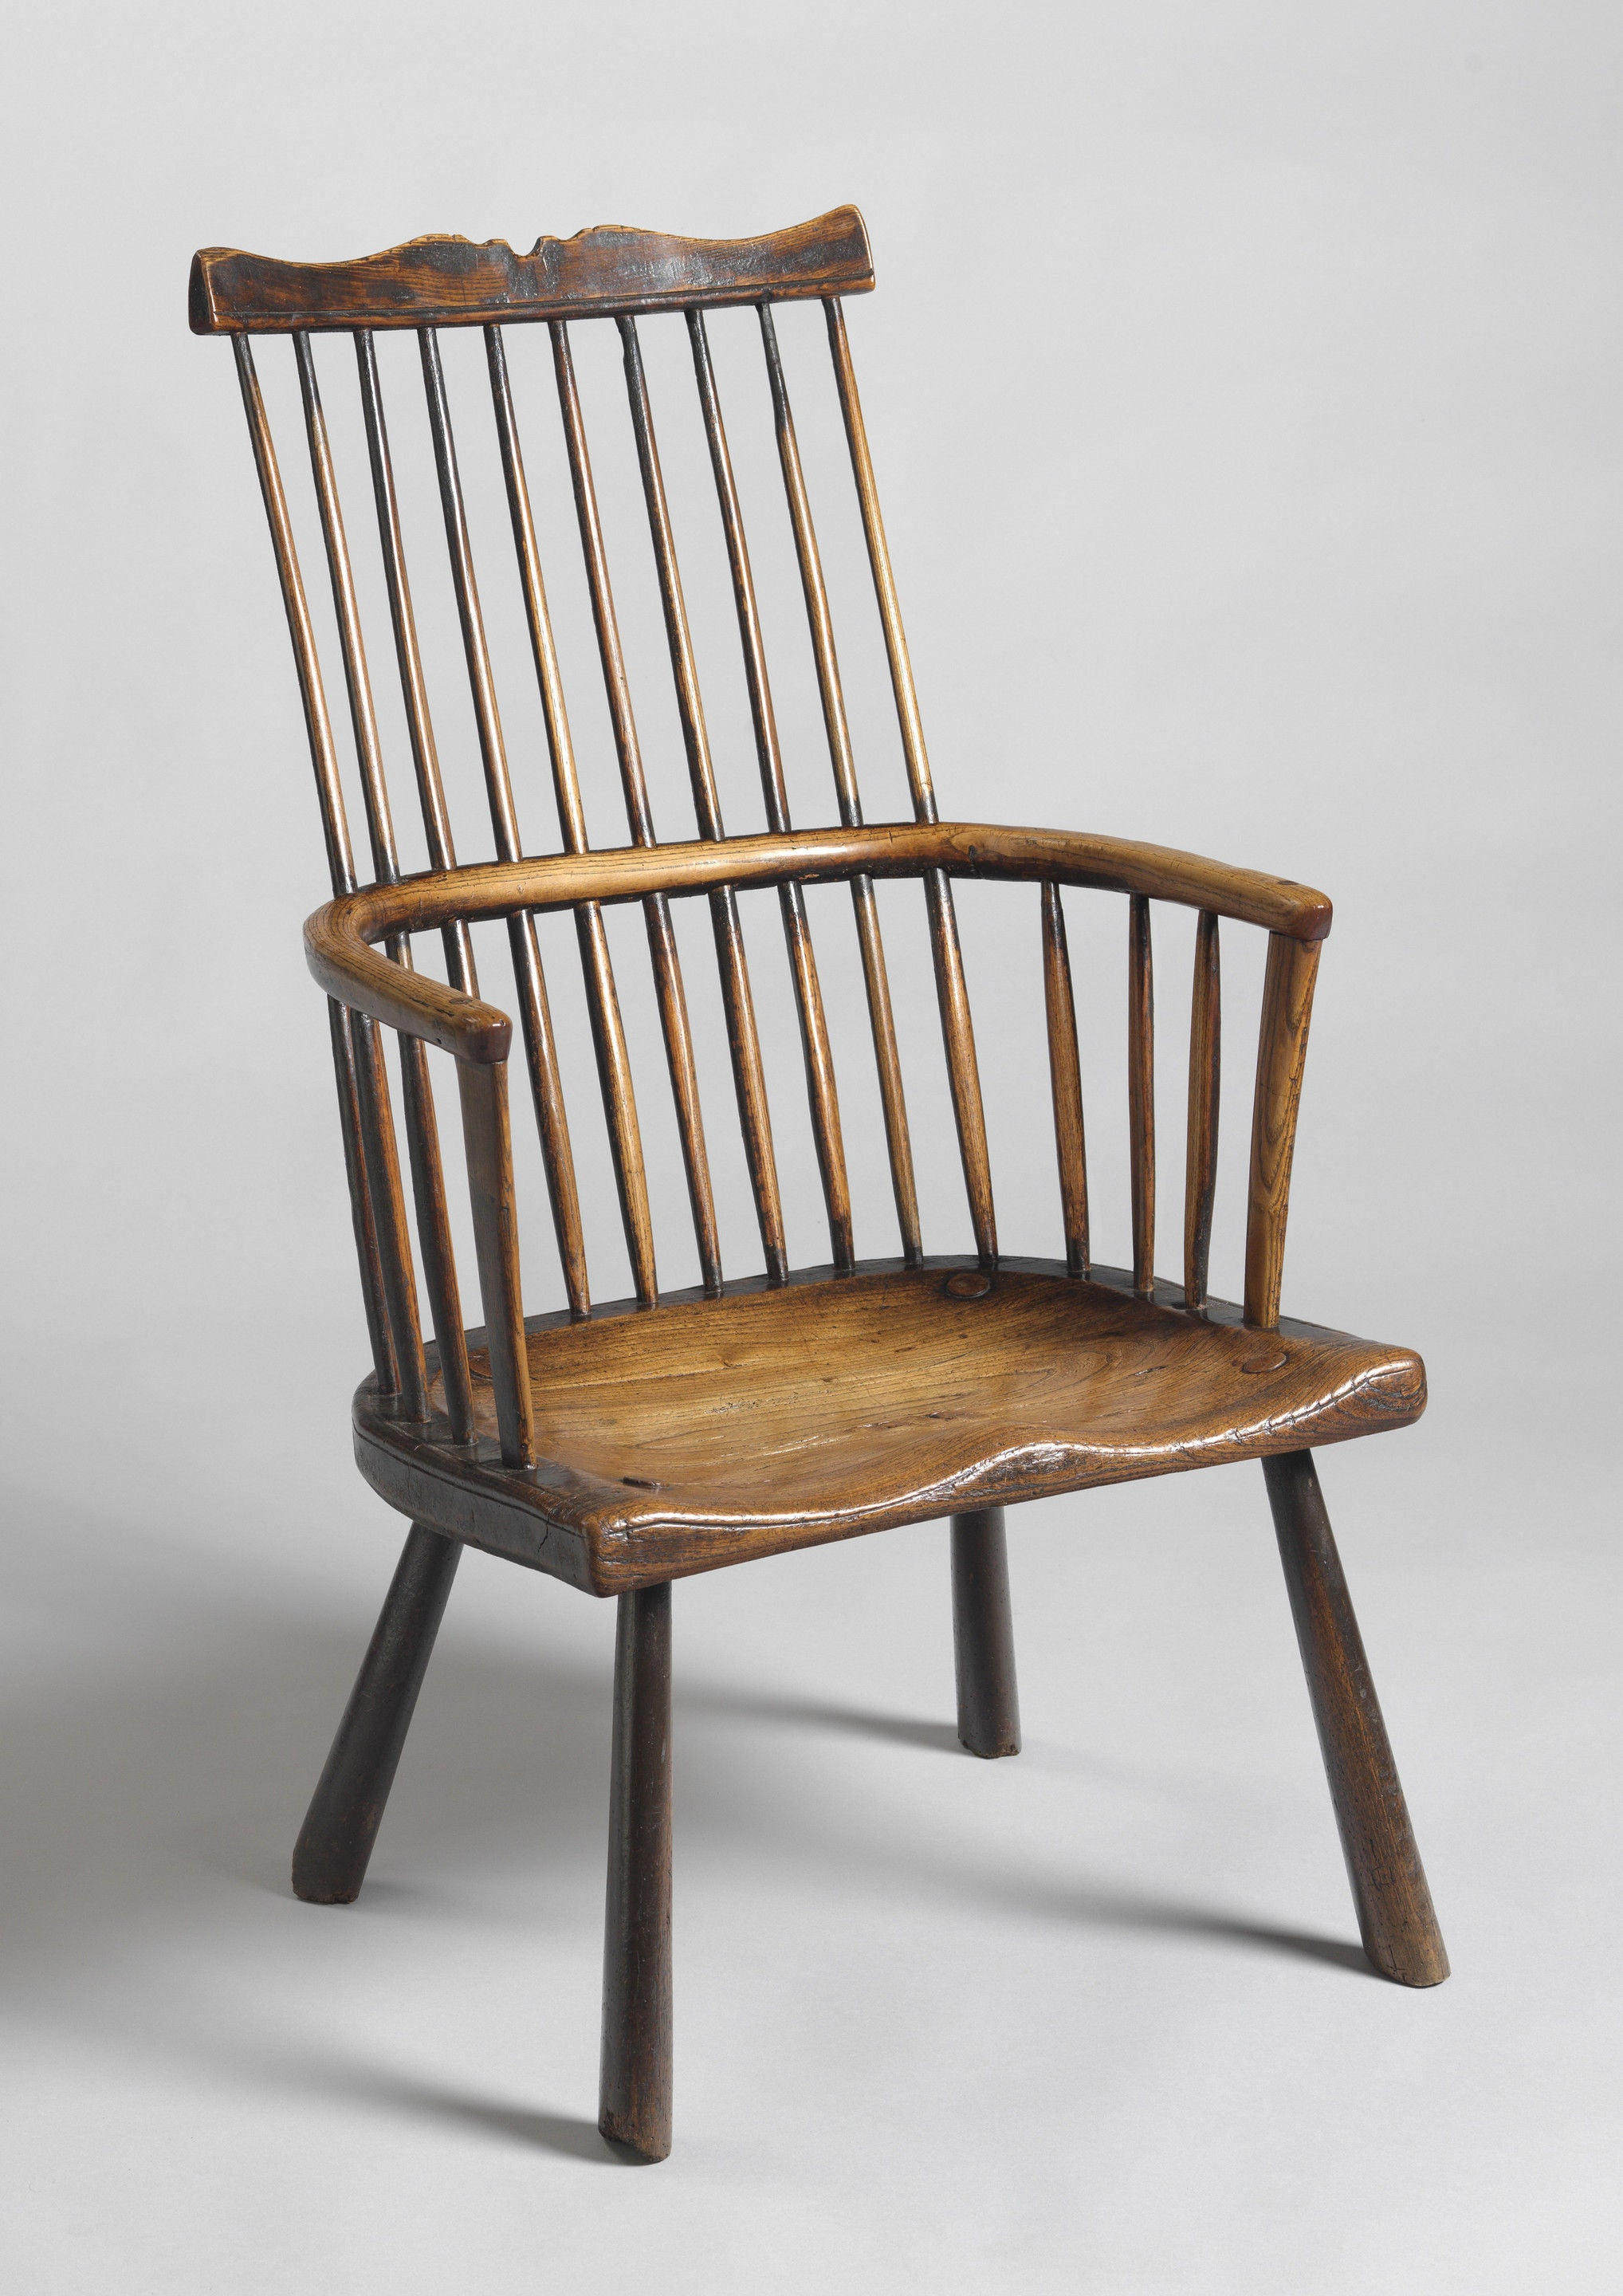 A Rare Early Comb Back Windsor Chair